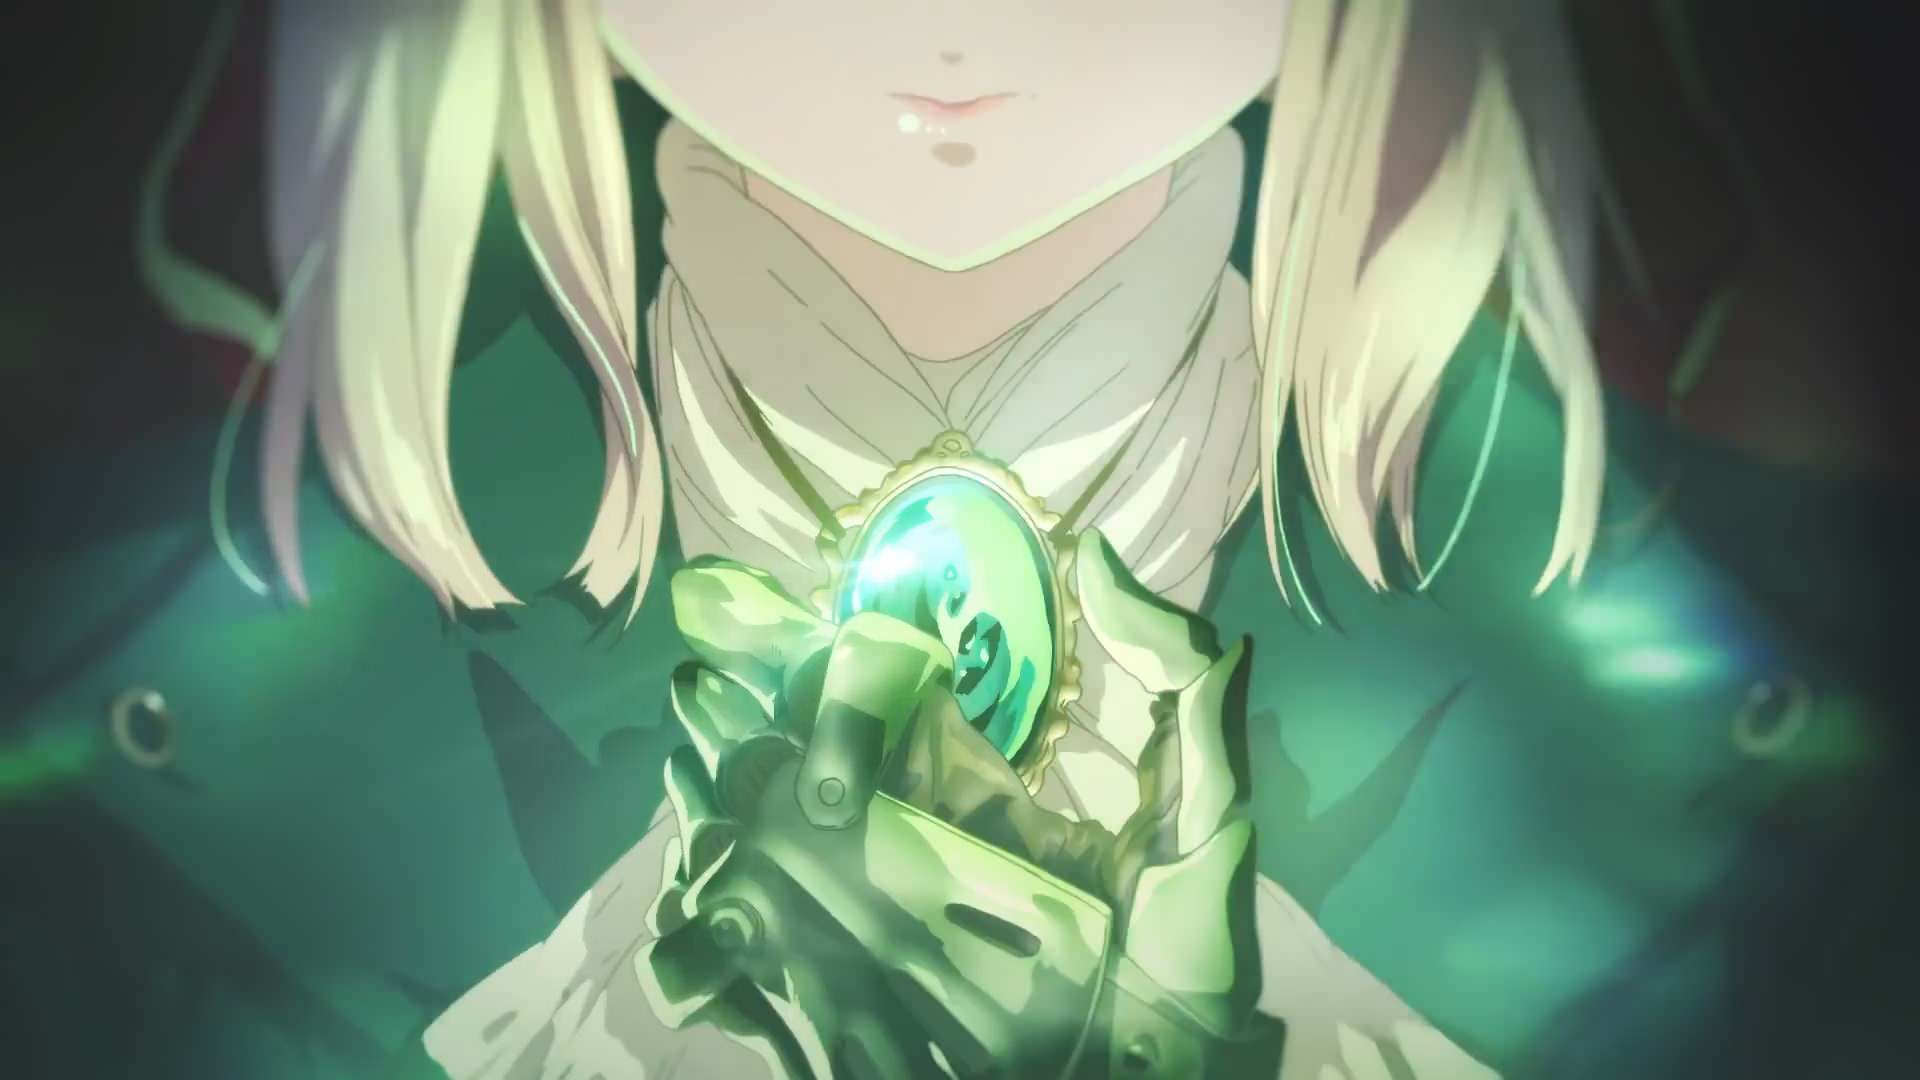 Violet Evergarden wallpaper 2